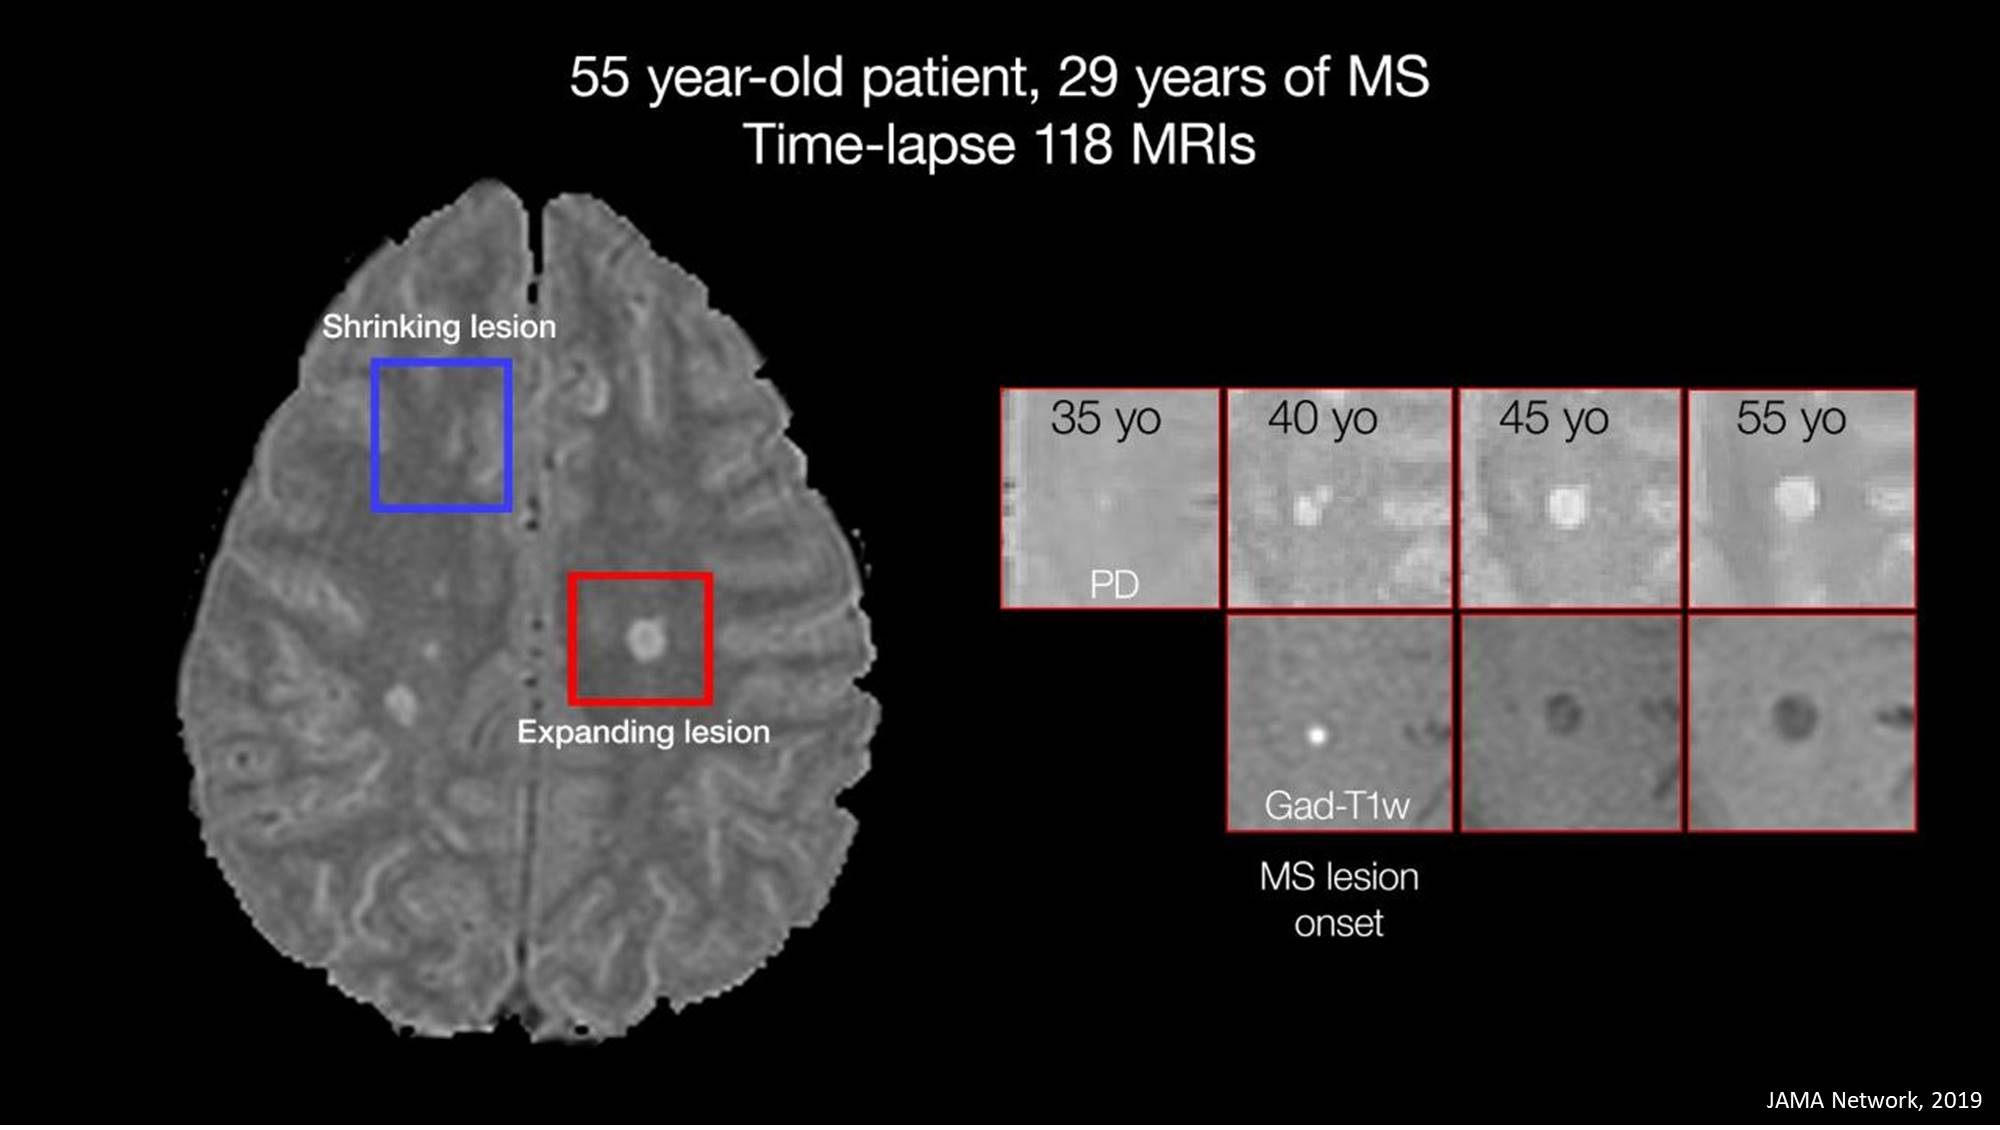 Smoldering spots in the brain may signal severe MS